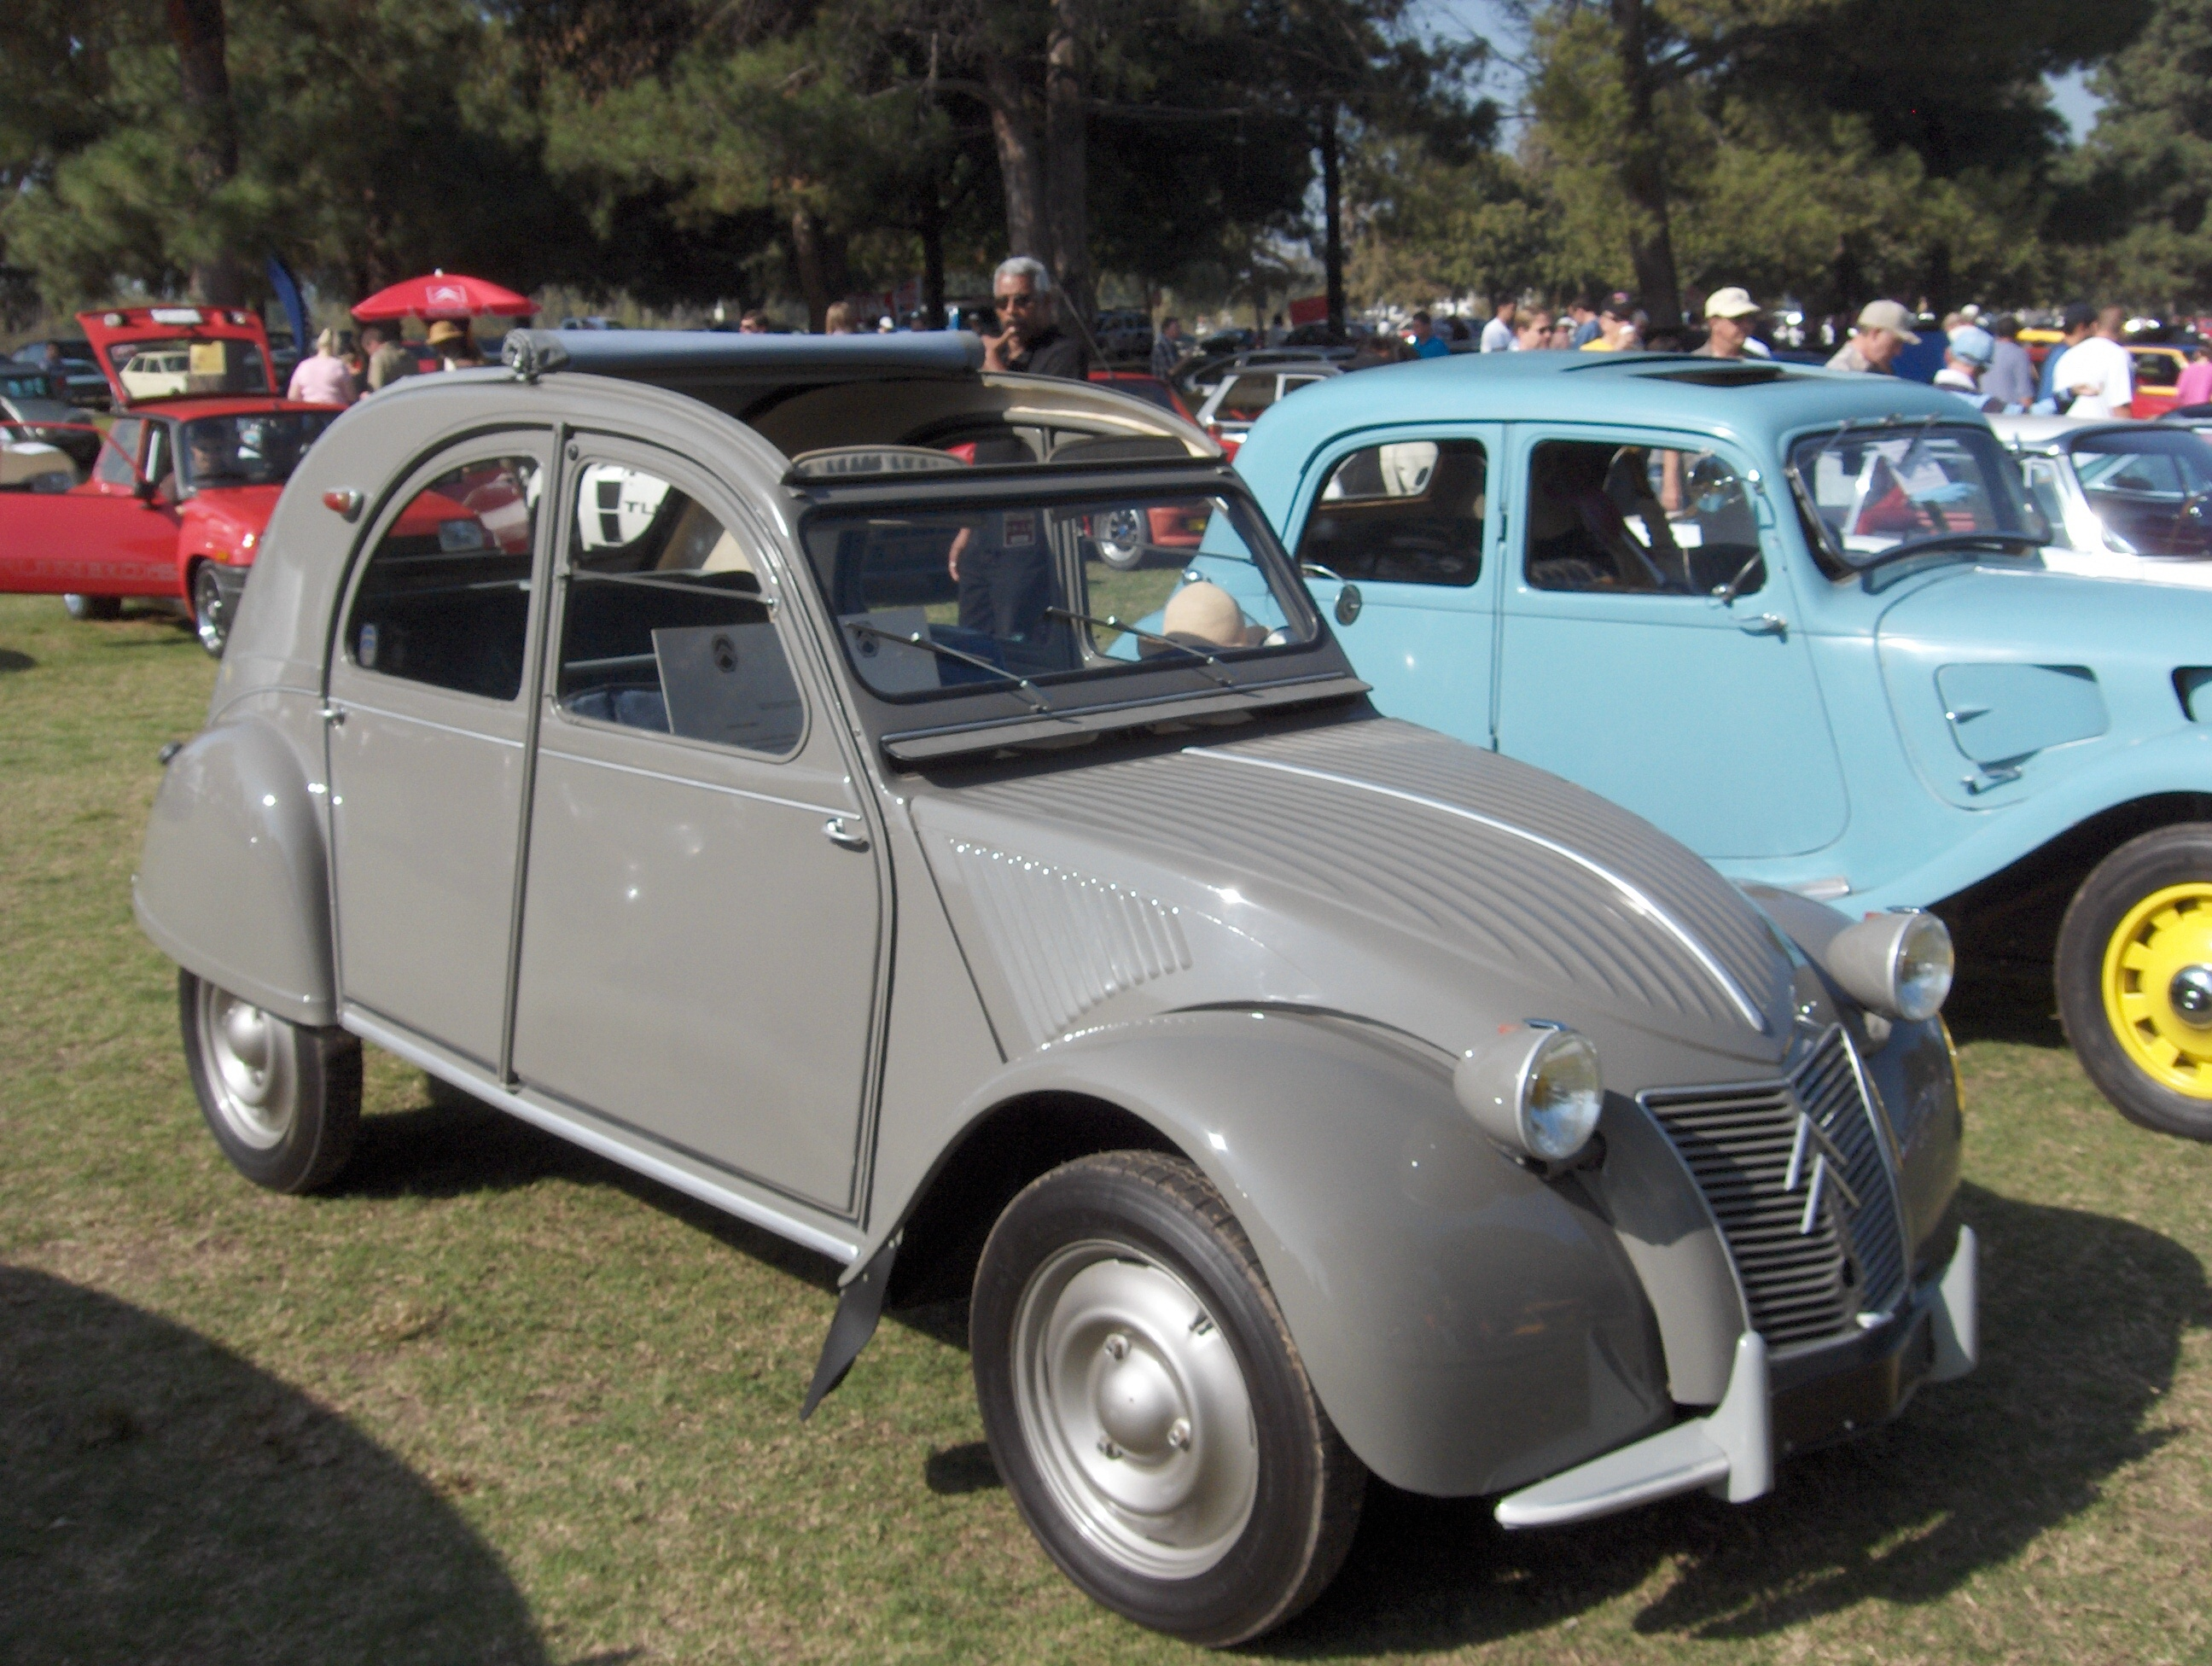 1955 Citroen 2CV Wallpaper For Desktop